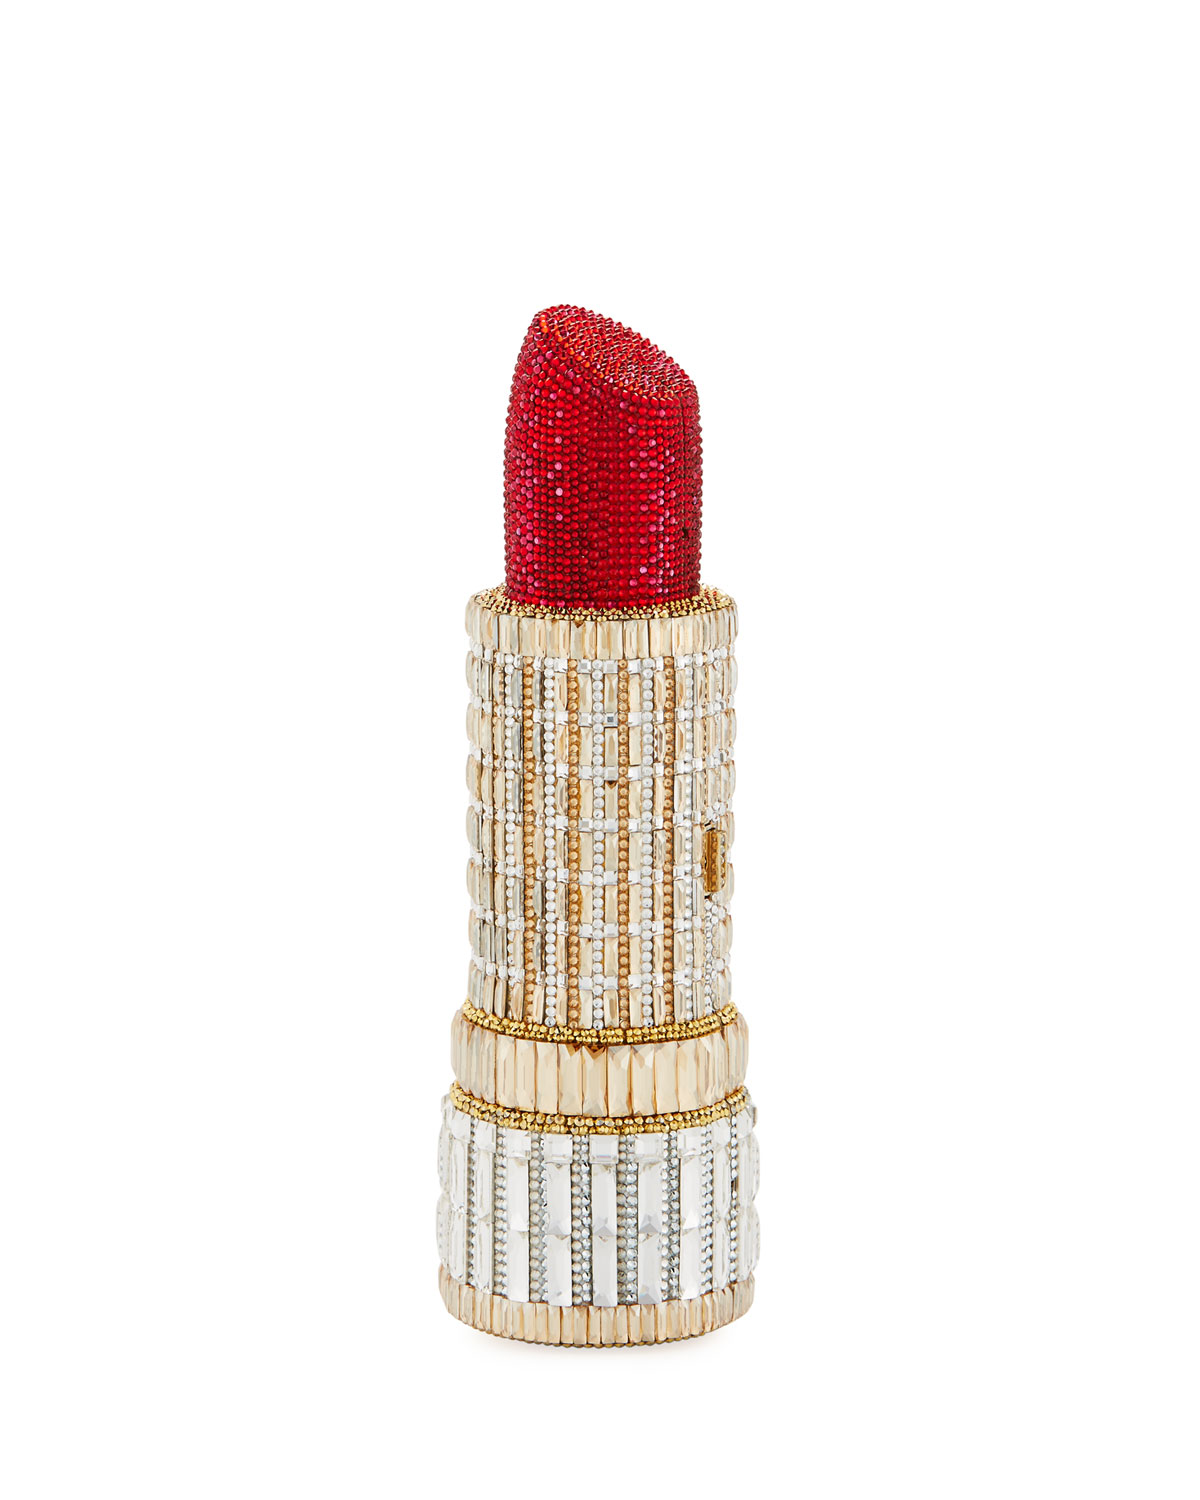 Exact Product: Seductress Crystal Lipstick Clutch Bag, Brand: Judith Leiber Couture, Available on: neimanmarcus.com